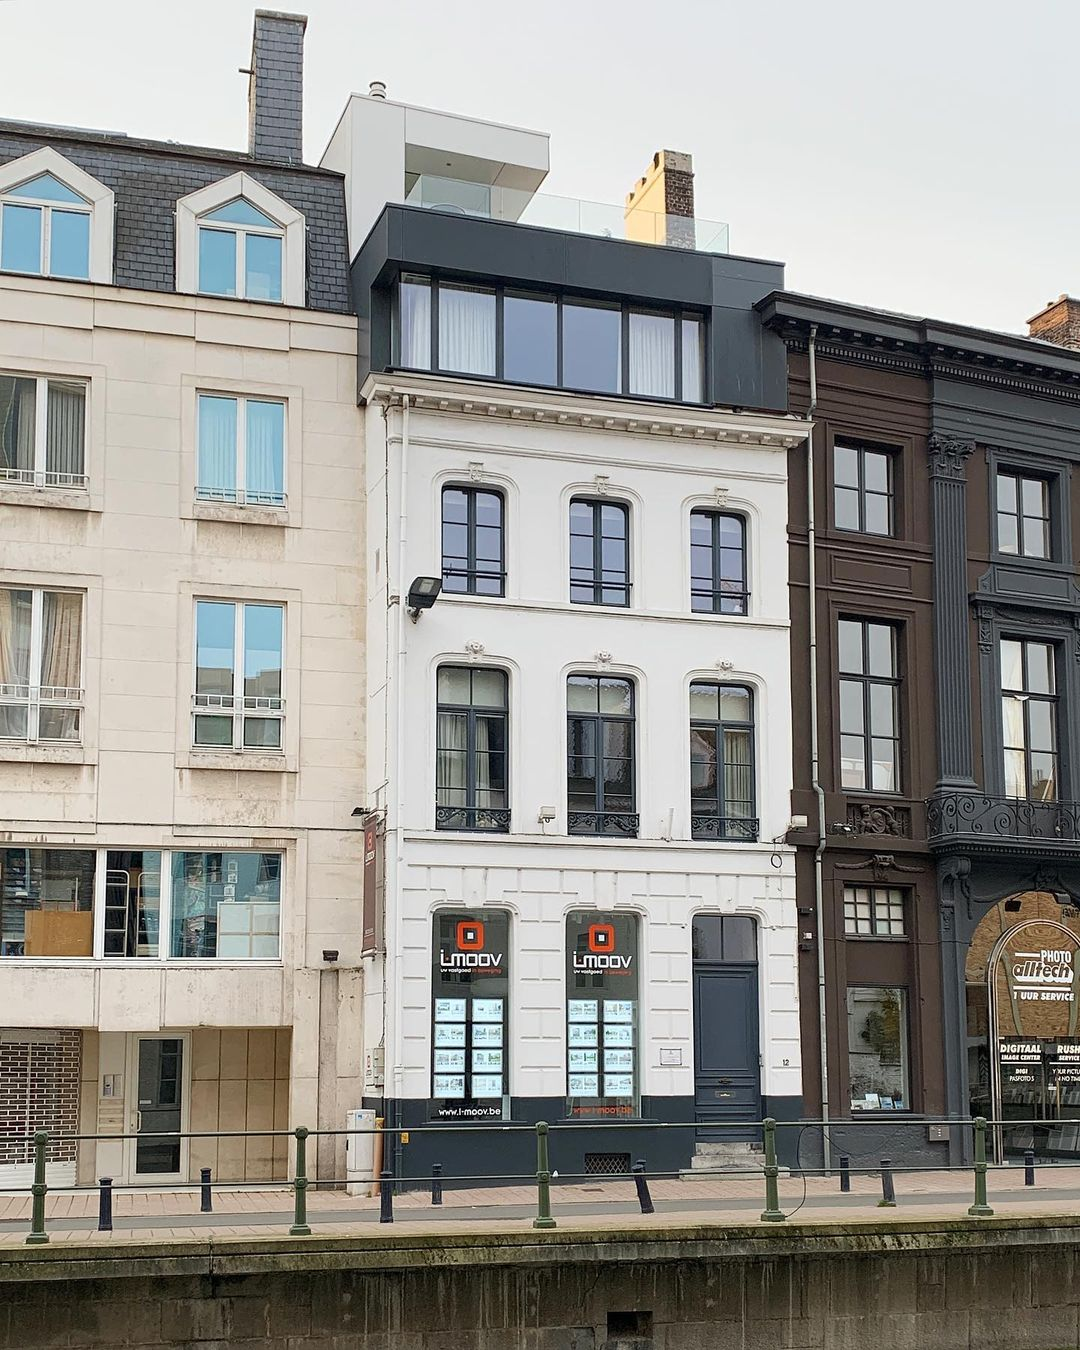 2019 11 17 B4 | Baeyens & Beck architecten Gent | architect nieuwbouw renovatie interieur | high end | architectenbureau